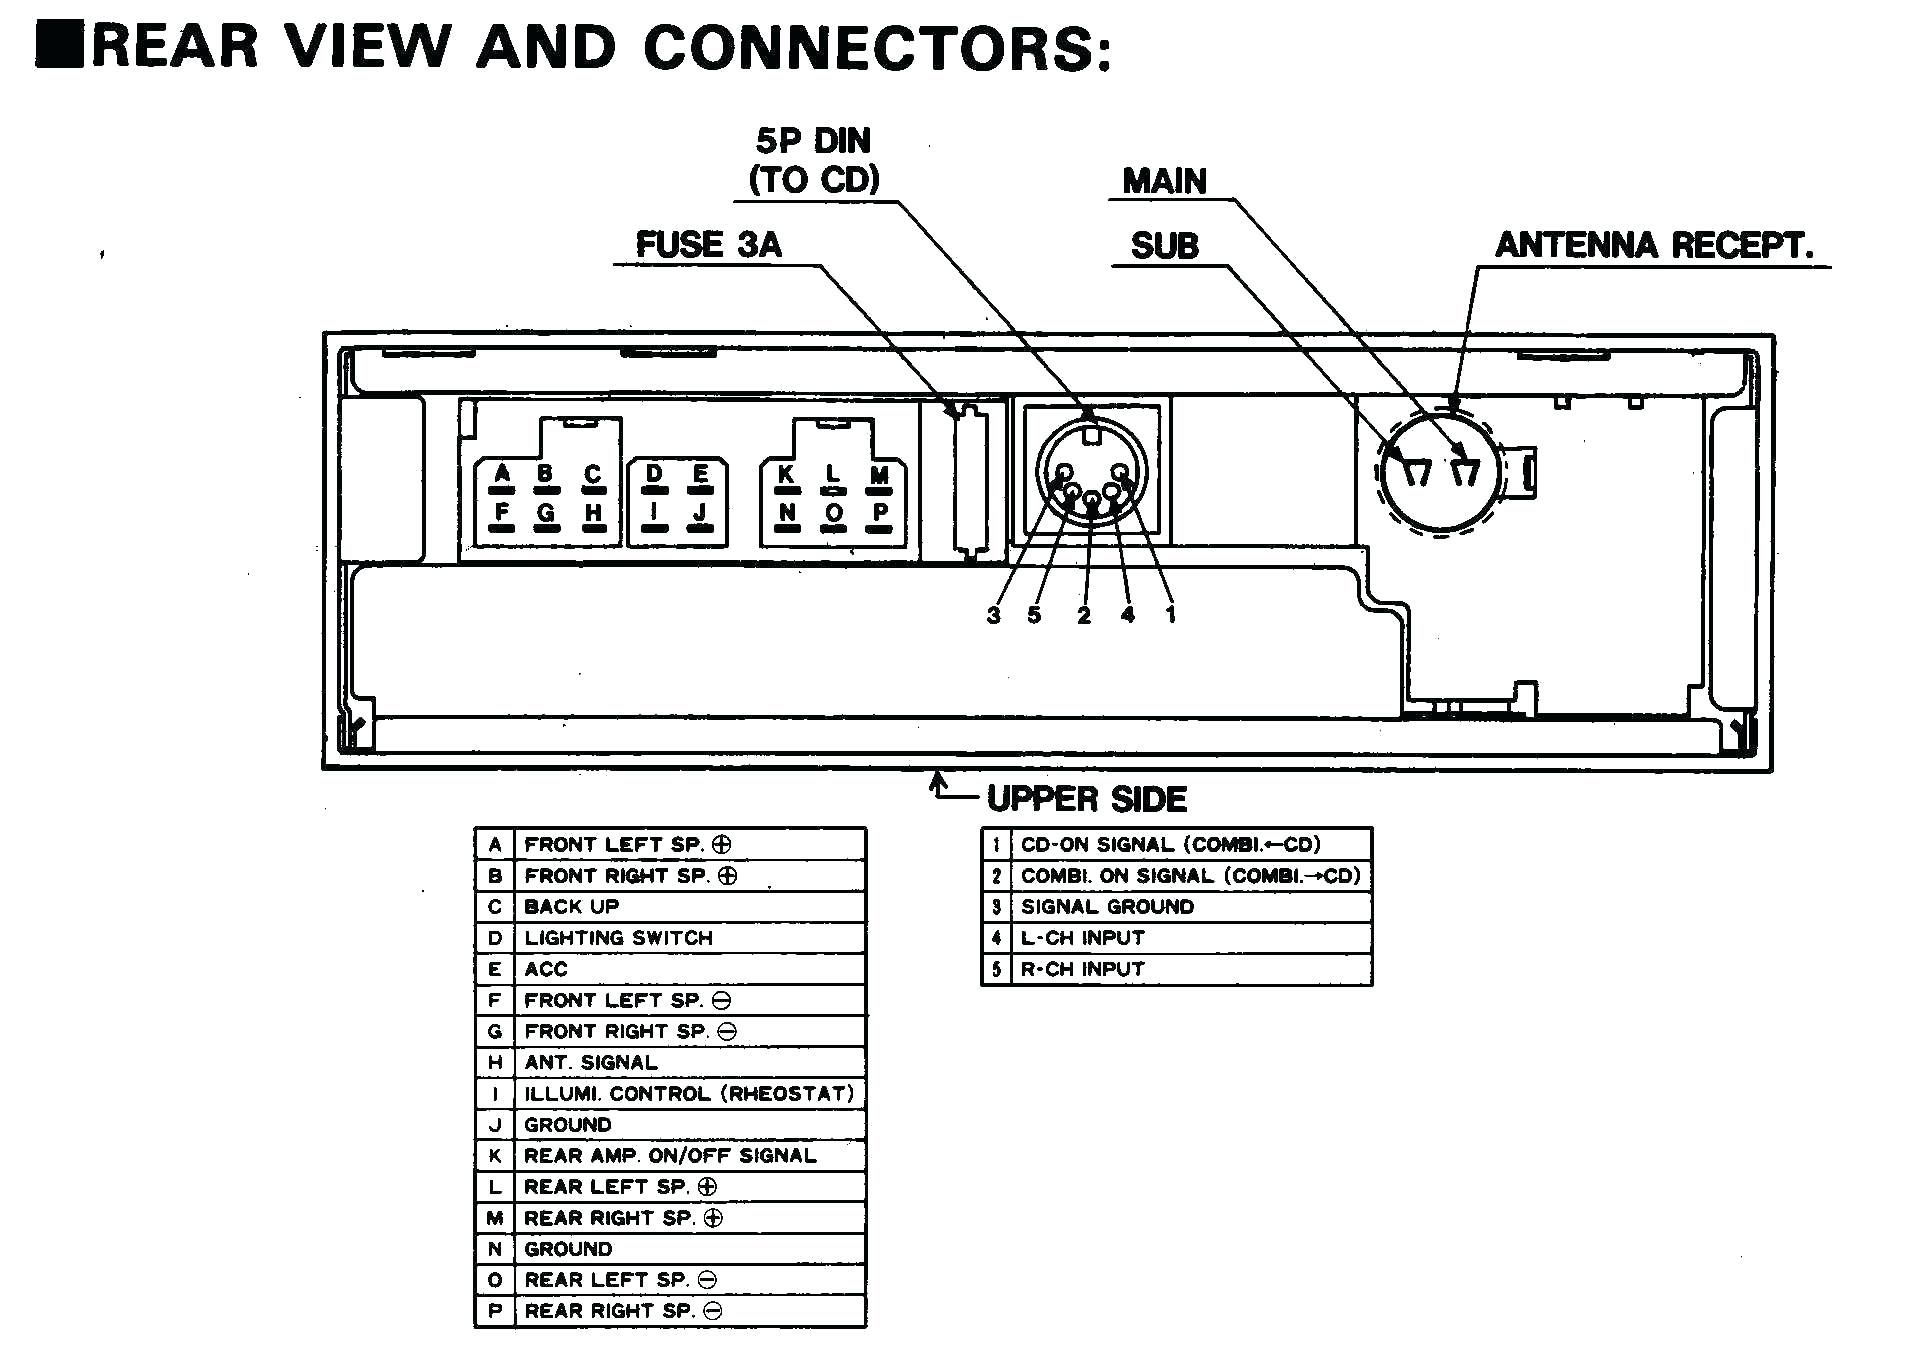 kenwood car radio stereo audio wiring diagram autoradio connector kenwood car radio stereo audio wiring diagram autoradio connector [ 1909 x 1363 Pixel ]